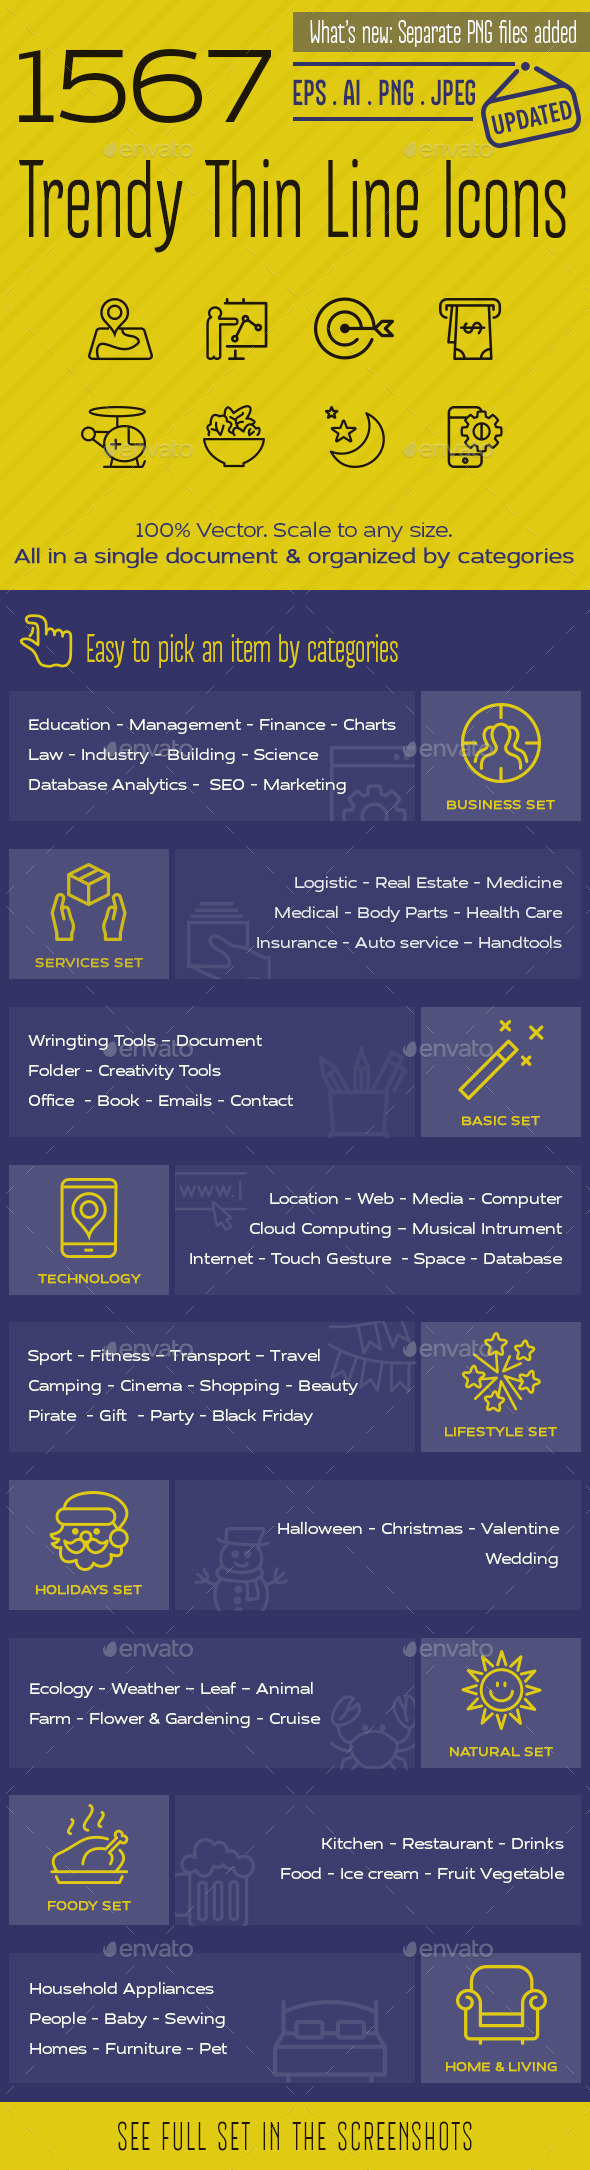 UI Graphics, Designs & Templates from GraphicRiver